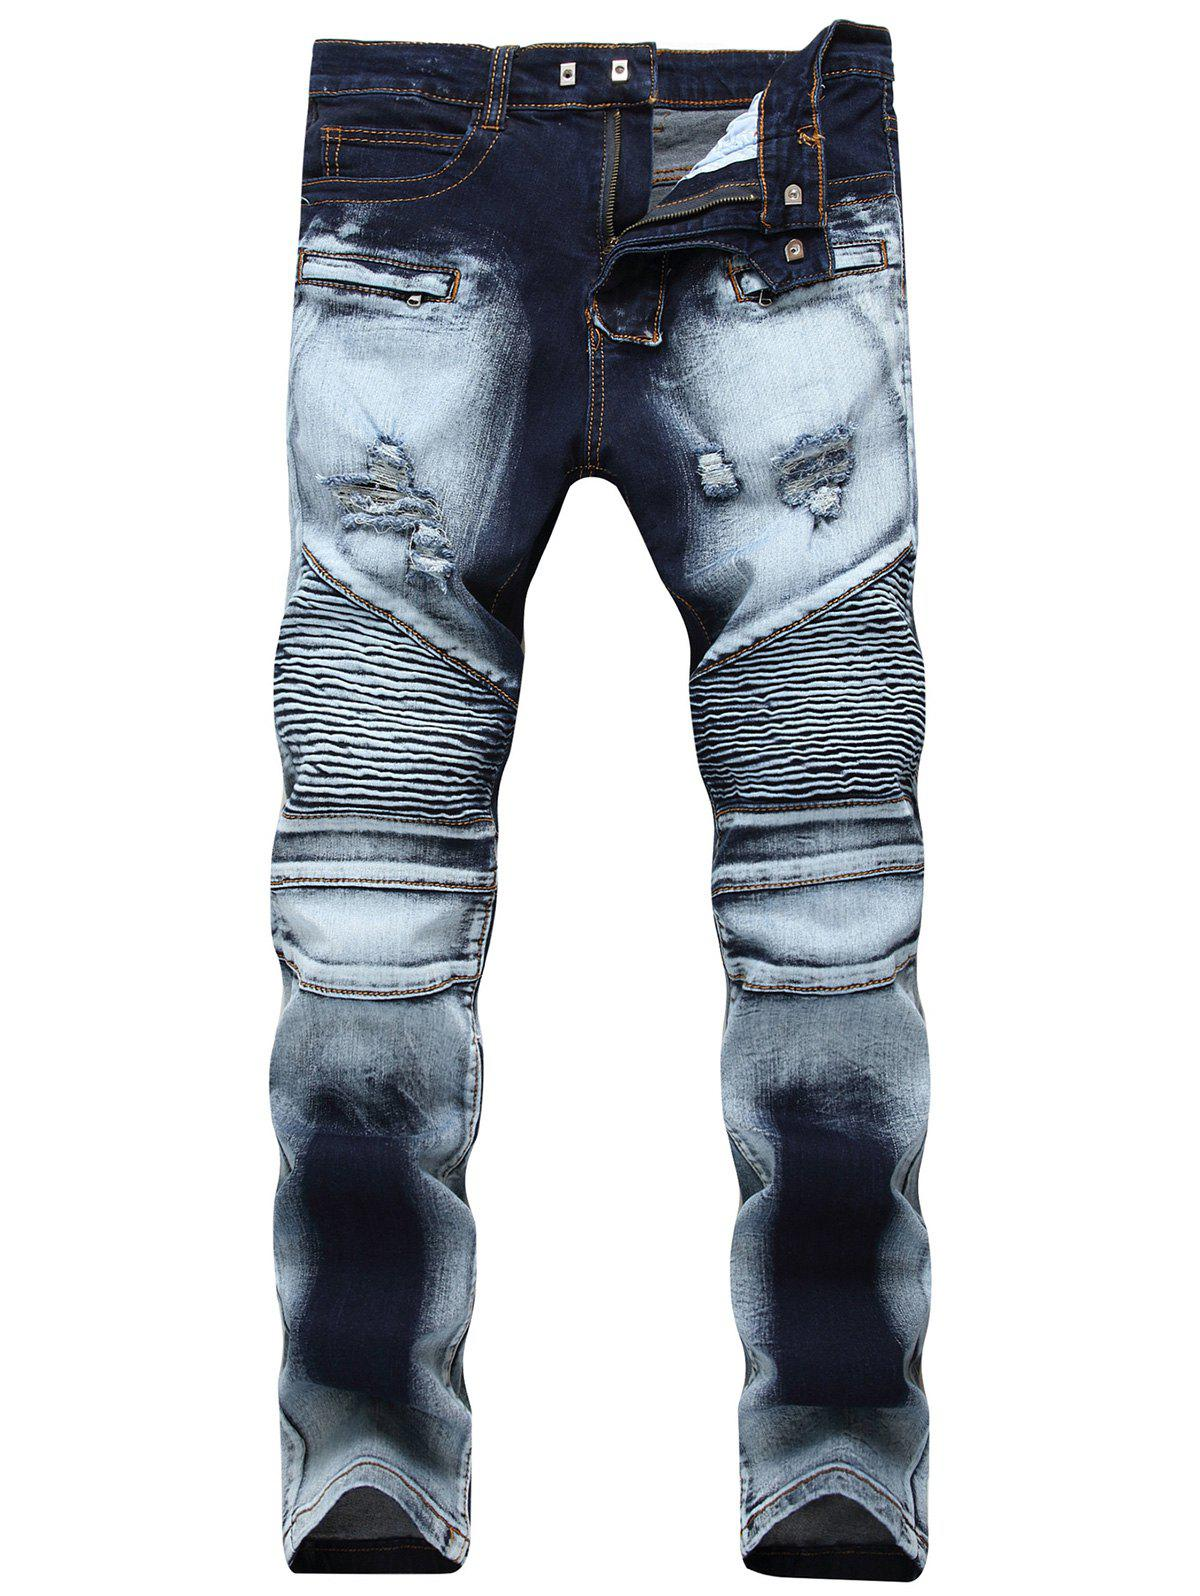 Acid Wash Ripped Biker JeansMEN<br><br>Size: 32; Color: BLUE; Material: Cotton,Polyester,Spandex; Pant Length: Long Pants; Fabric Type: Denim; Wash: Acid Washed; Fit Type: Regular; Waist Type: Mid; Closure Type: Zipper Fly; Weight: 0.7400kg; Pant Style: Straight; Package Contents: 1 x Jeans; With Belt: No;